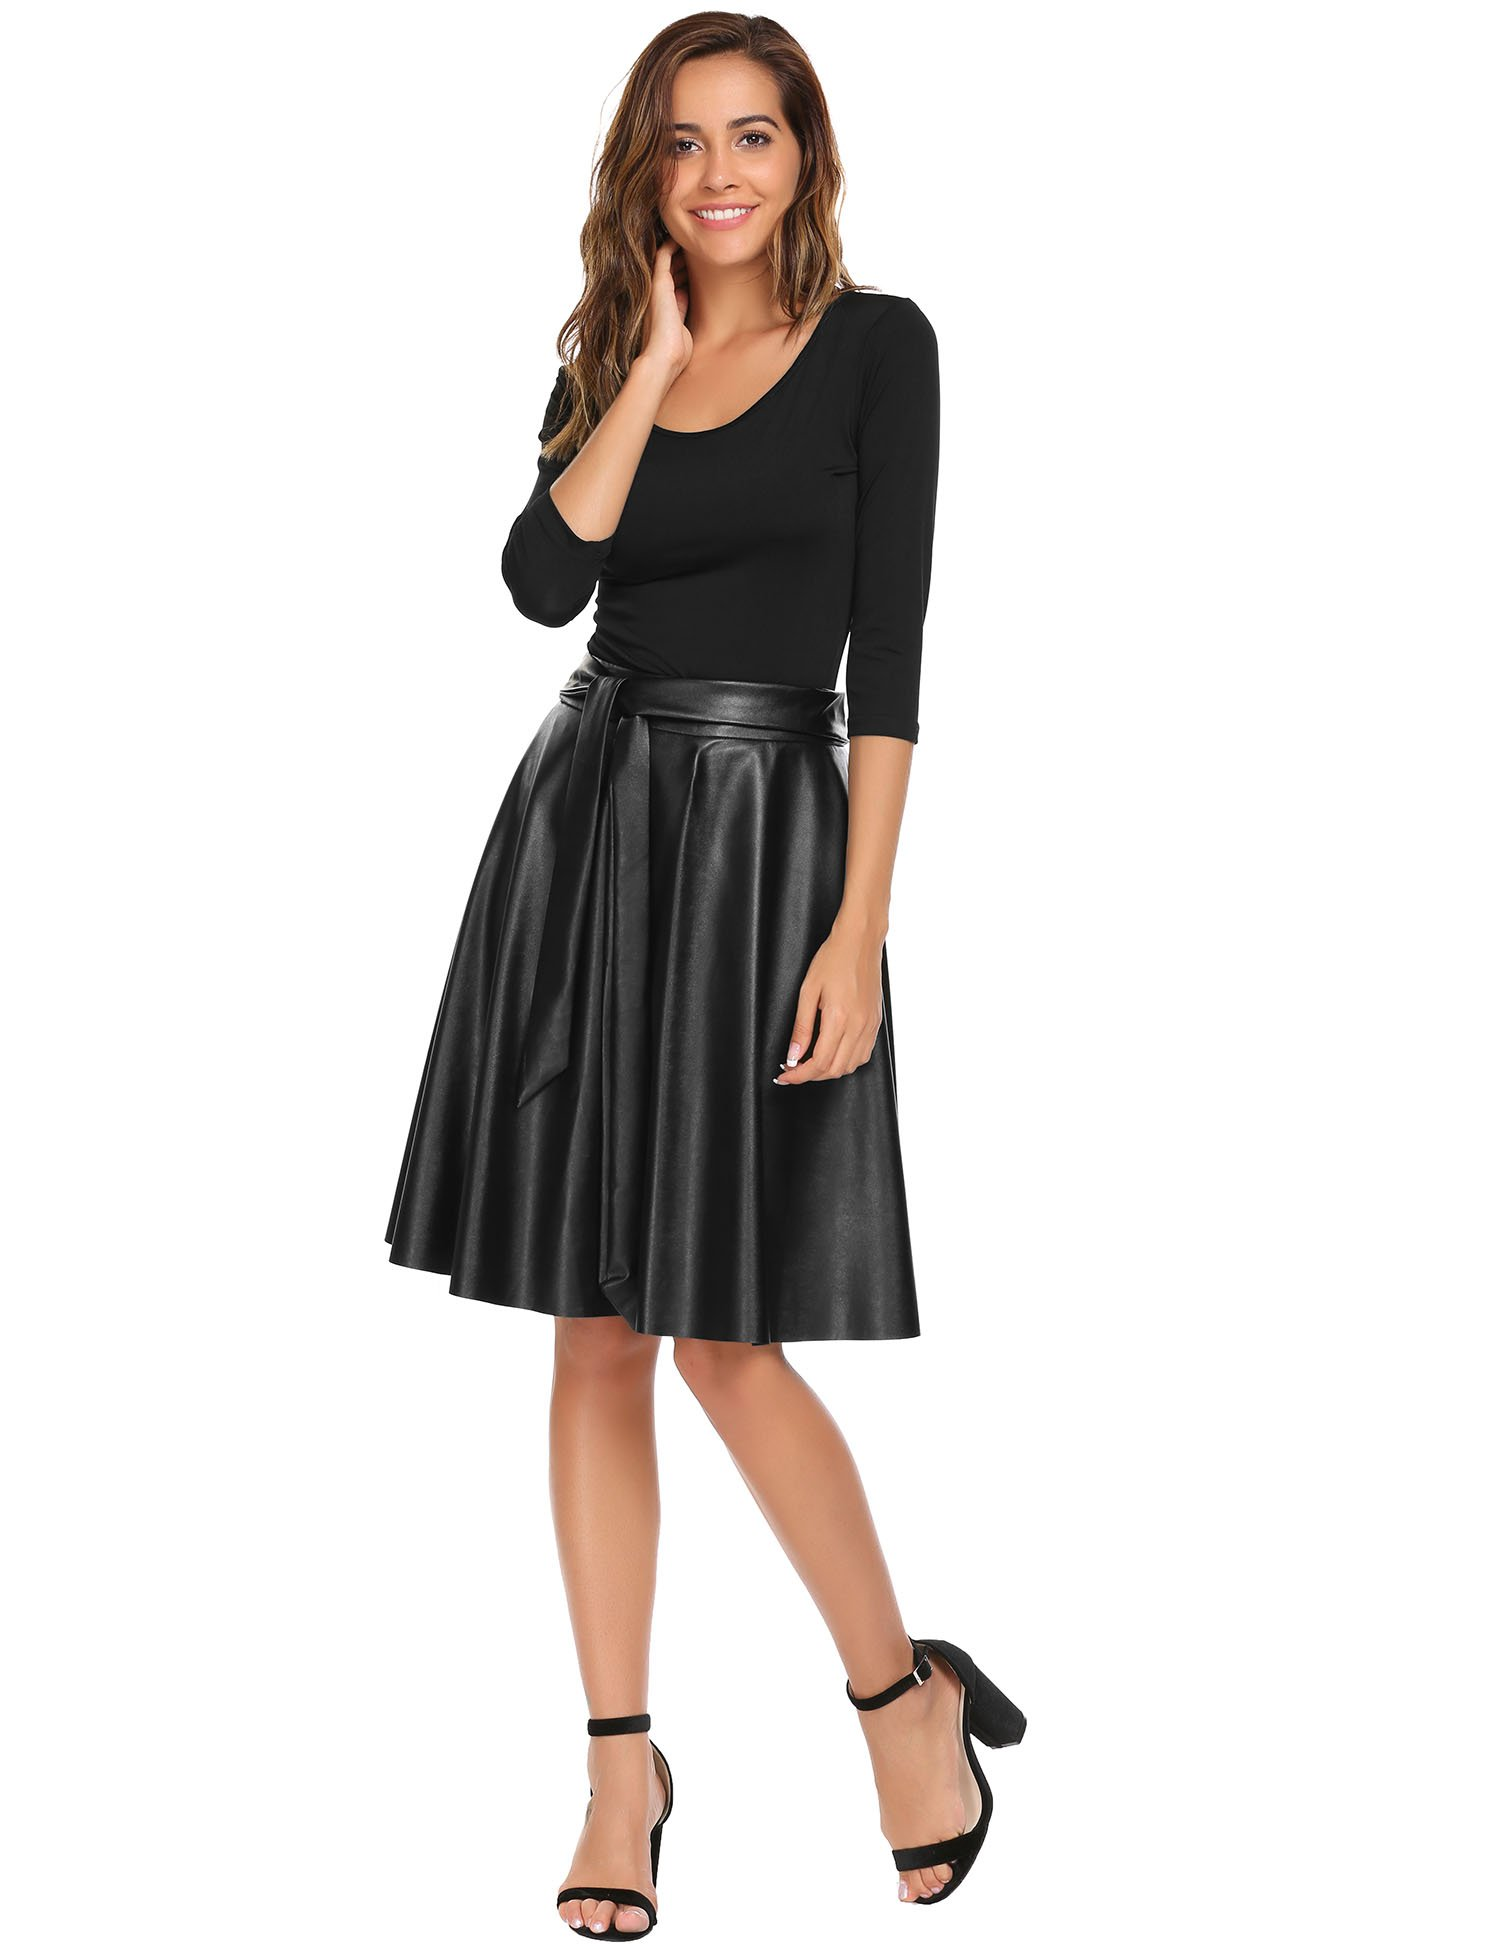 ANGVNS Synthetic Leather High Waist Midi A-Line Swing Street Skirt For Women